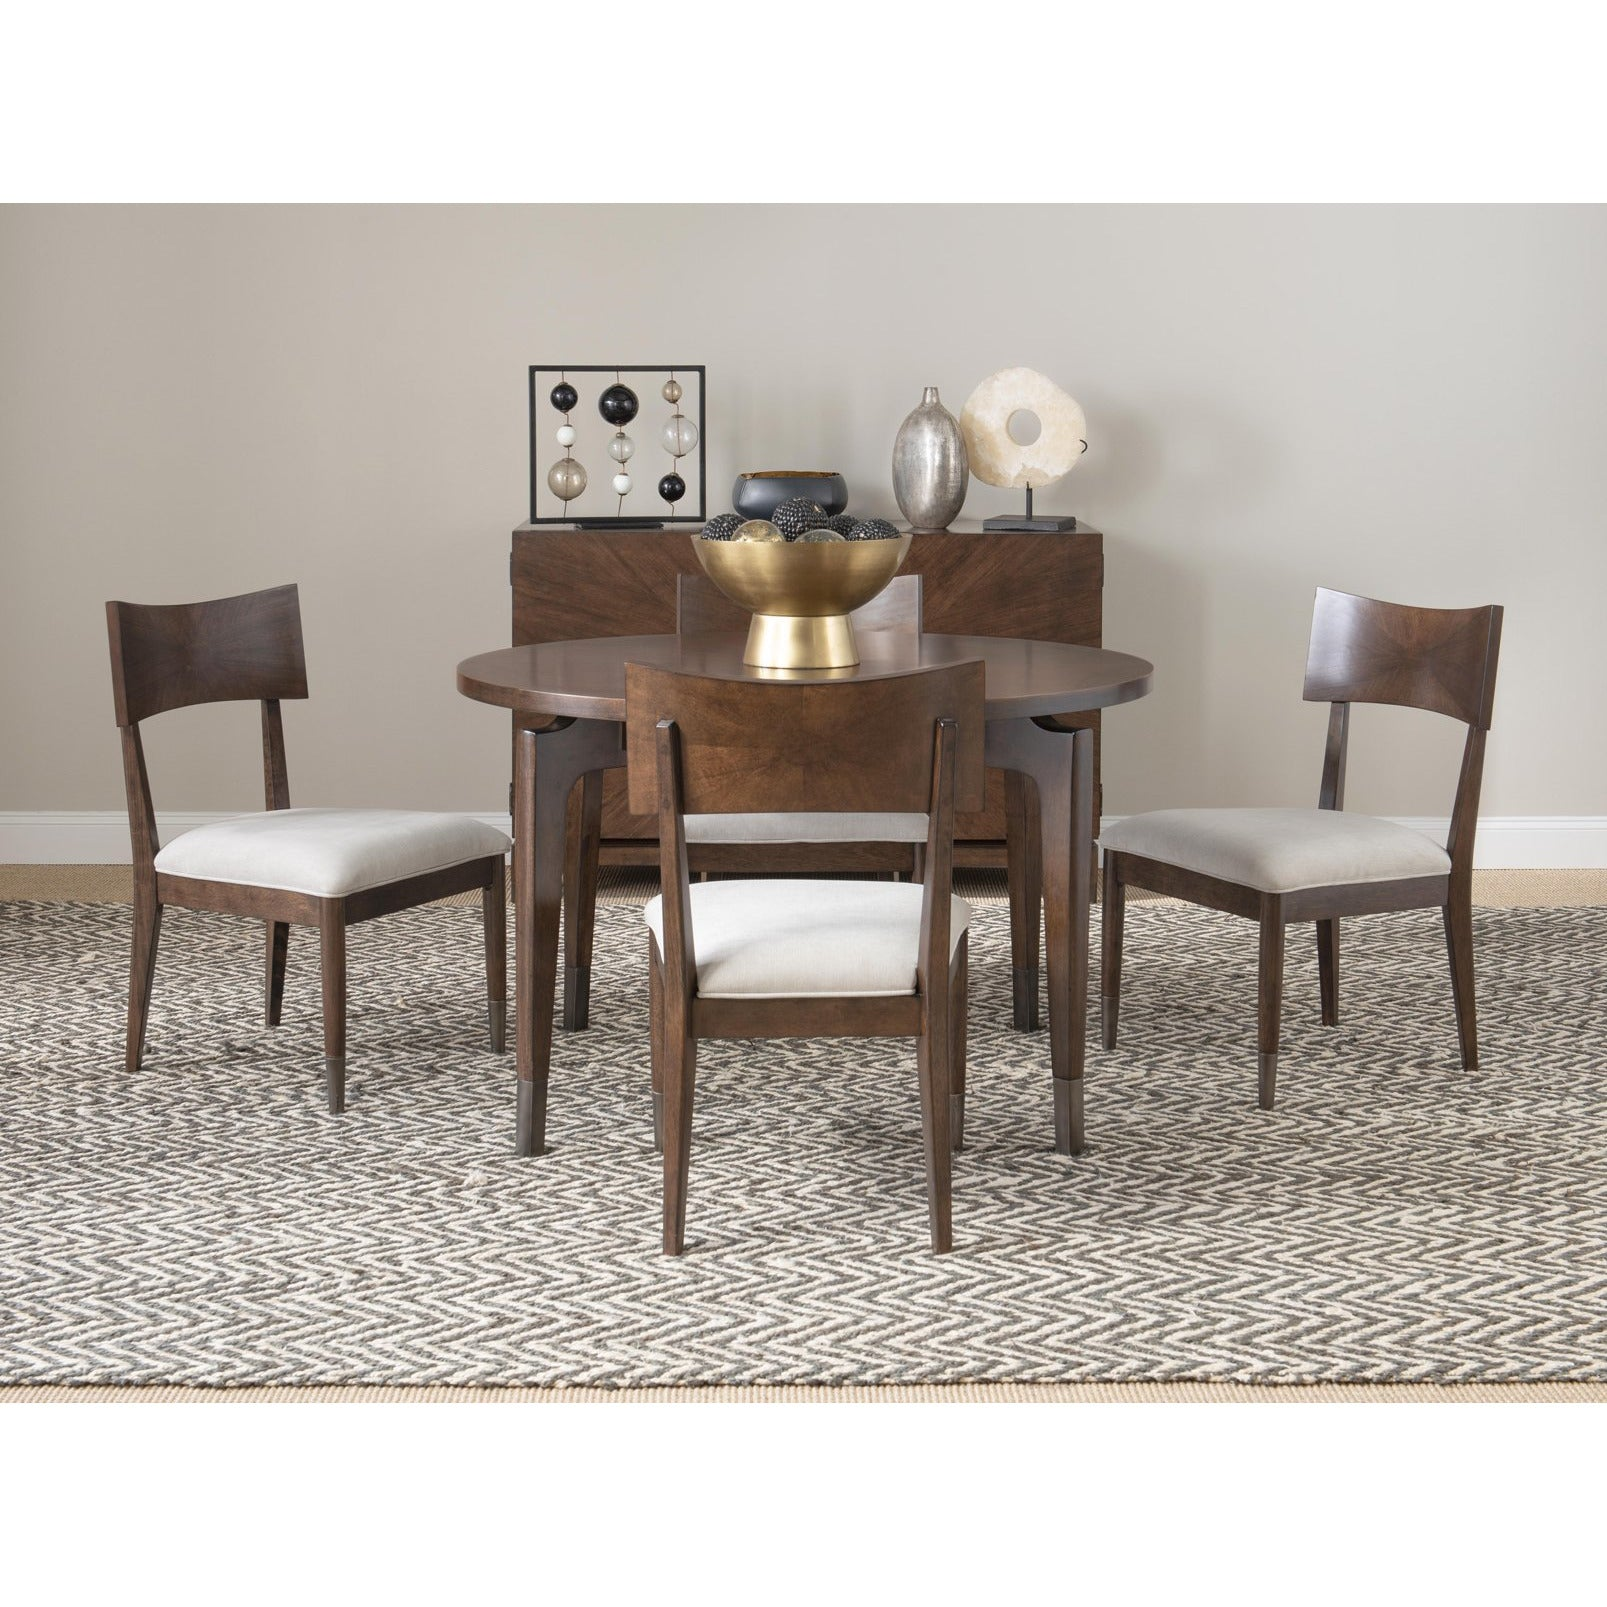 Savoy Round Dining Set